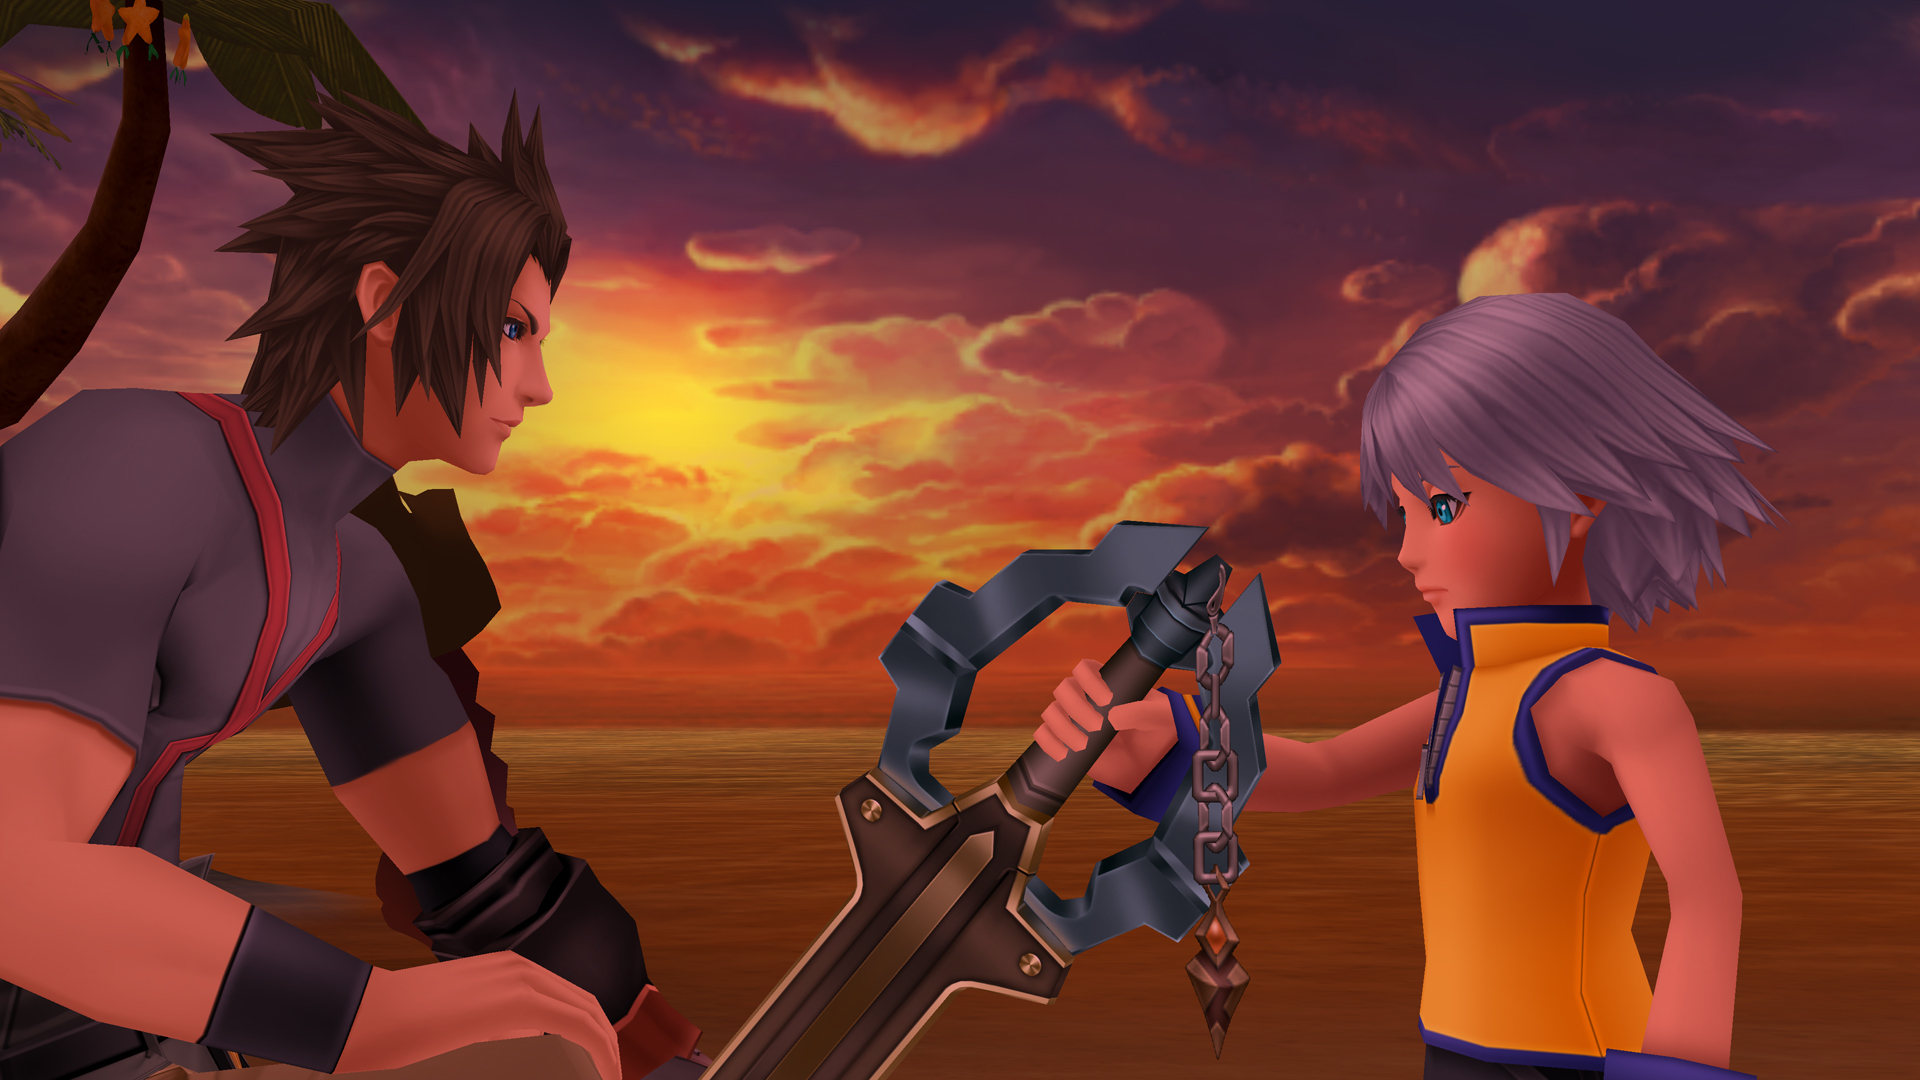 kingdom hearts 1.5 2.5 trophy guide